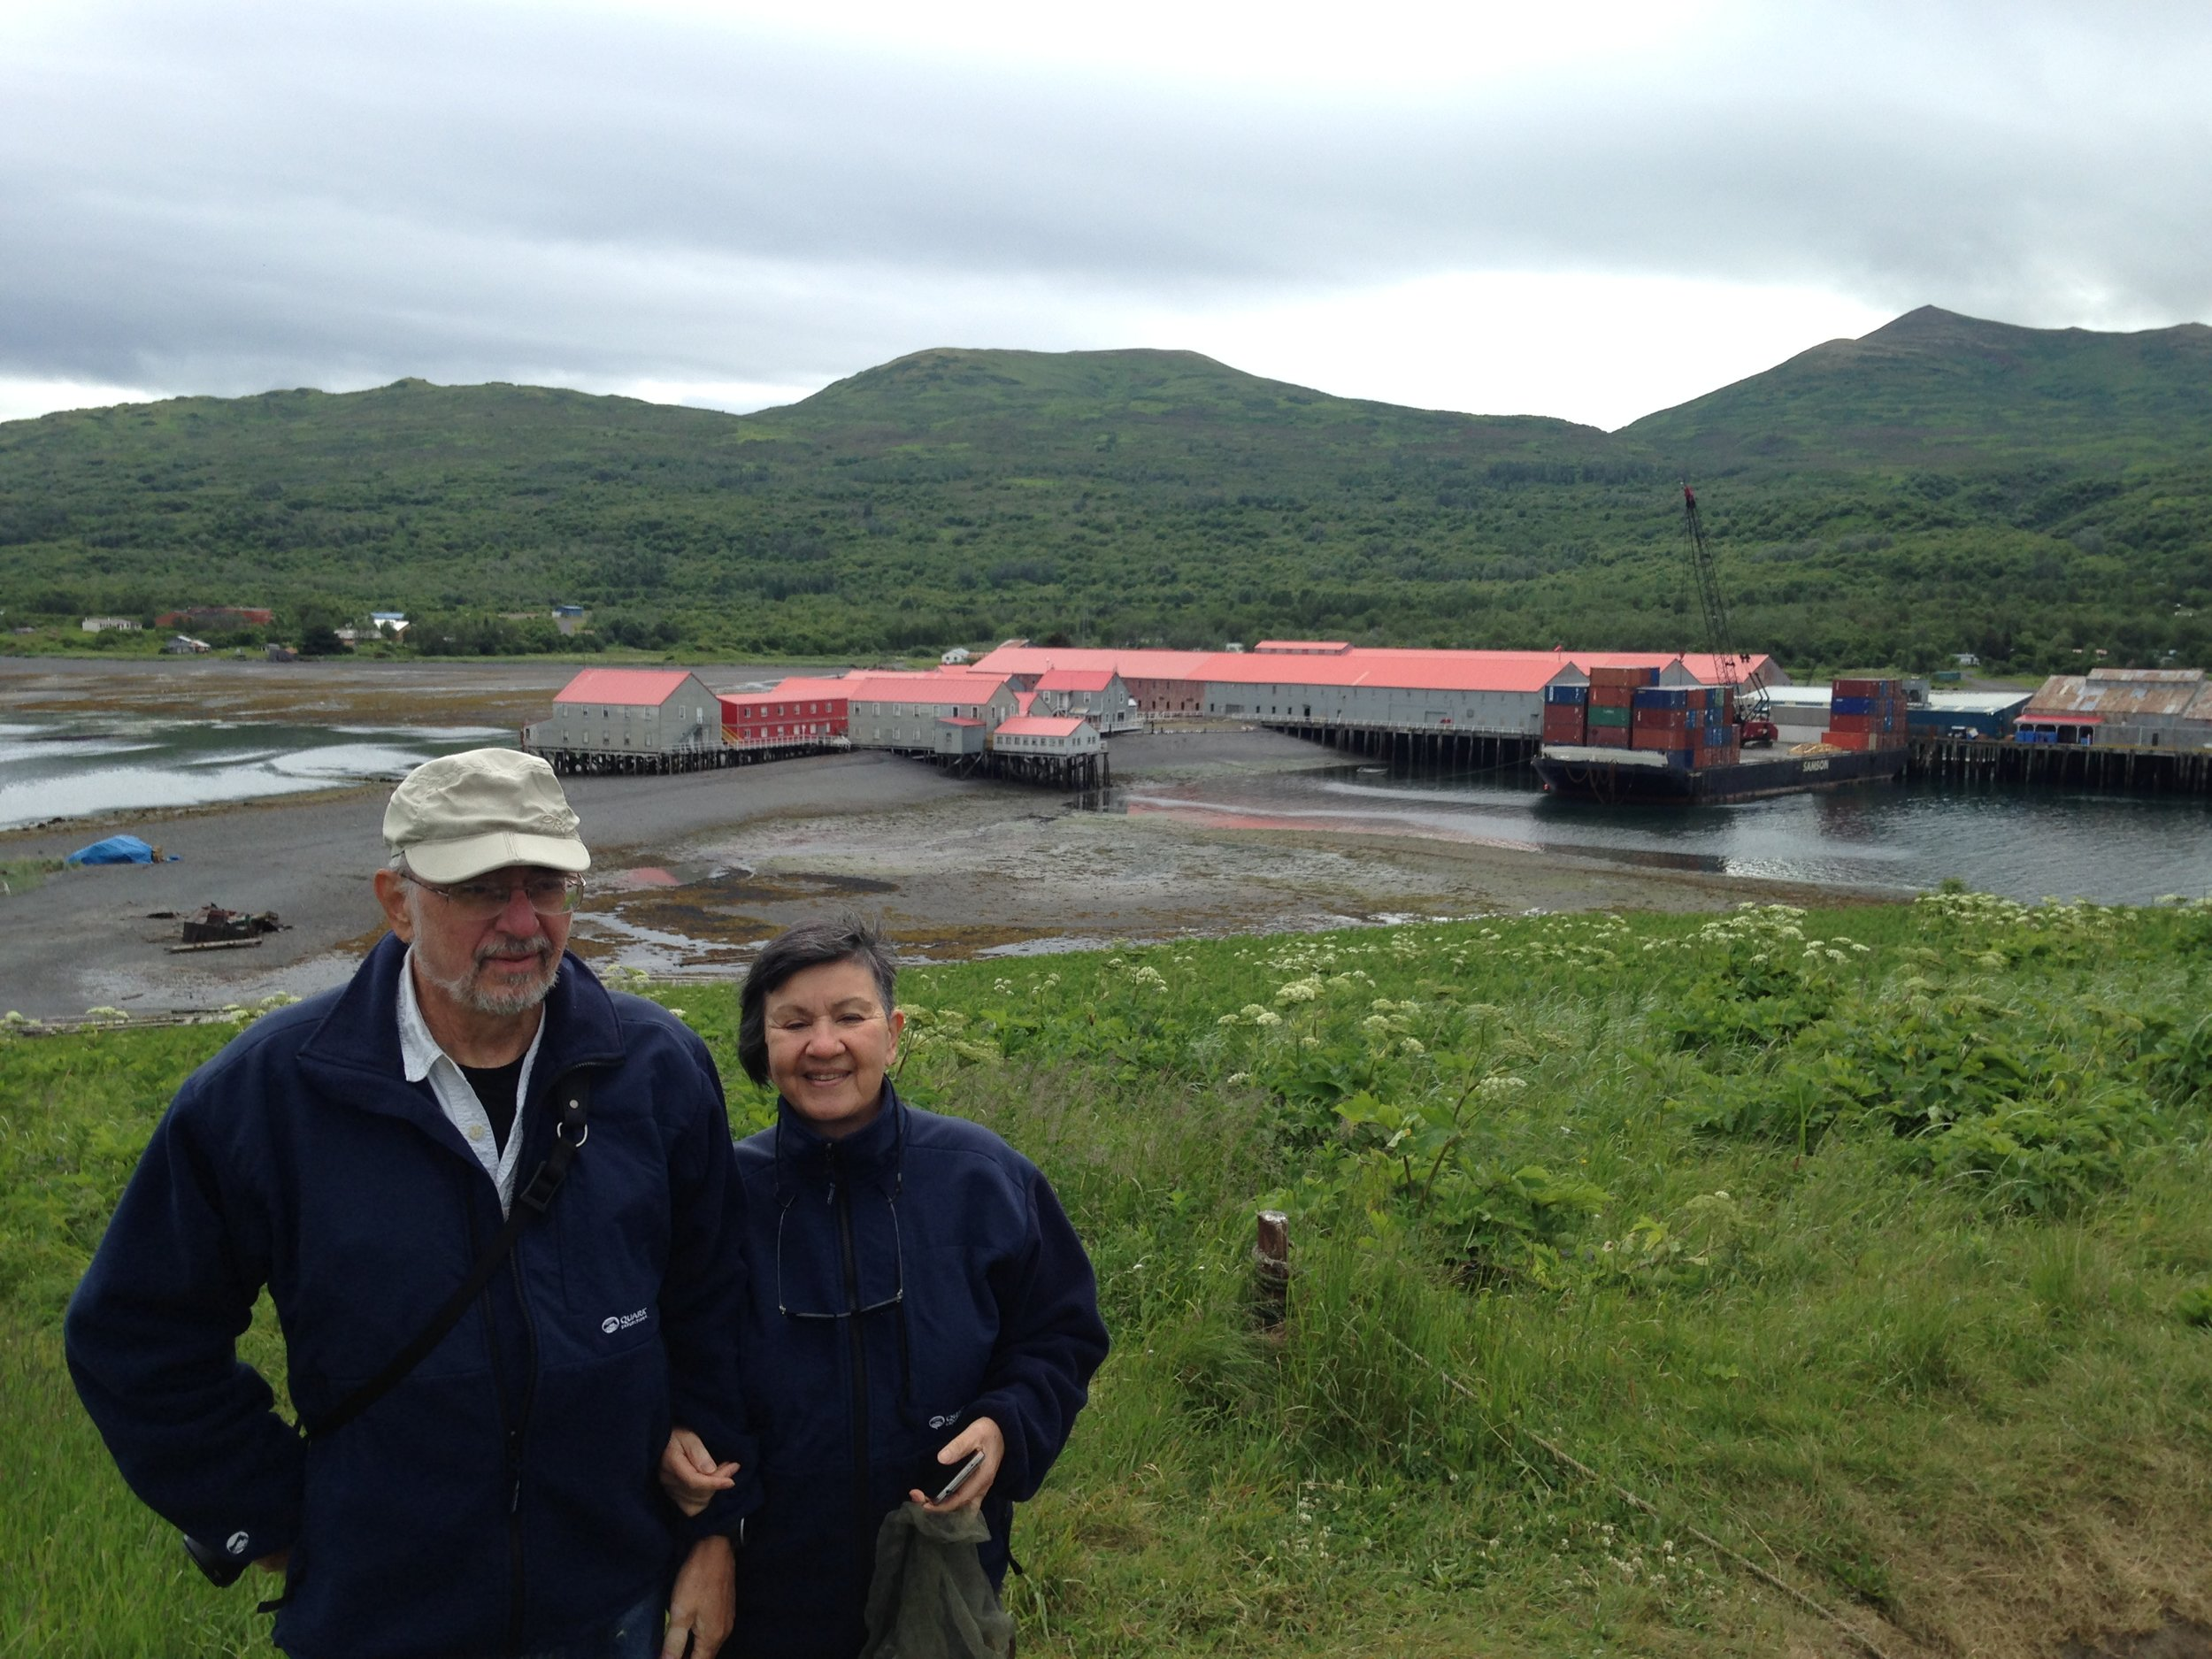 Paul Lewis and Diane Rodill pose in front of the Larsen Bay cannery on the Fourth of July, 2015. Diane's father, Denis, was one of the Alaskeros who took part in the 1915 parade and pageant. Diane and her husband, Paul, traveled to Larsen Bay in honor of the 100 year anniversary of Diane's father working in Larsen Bay.